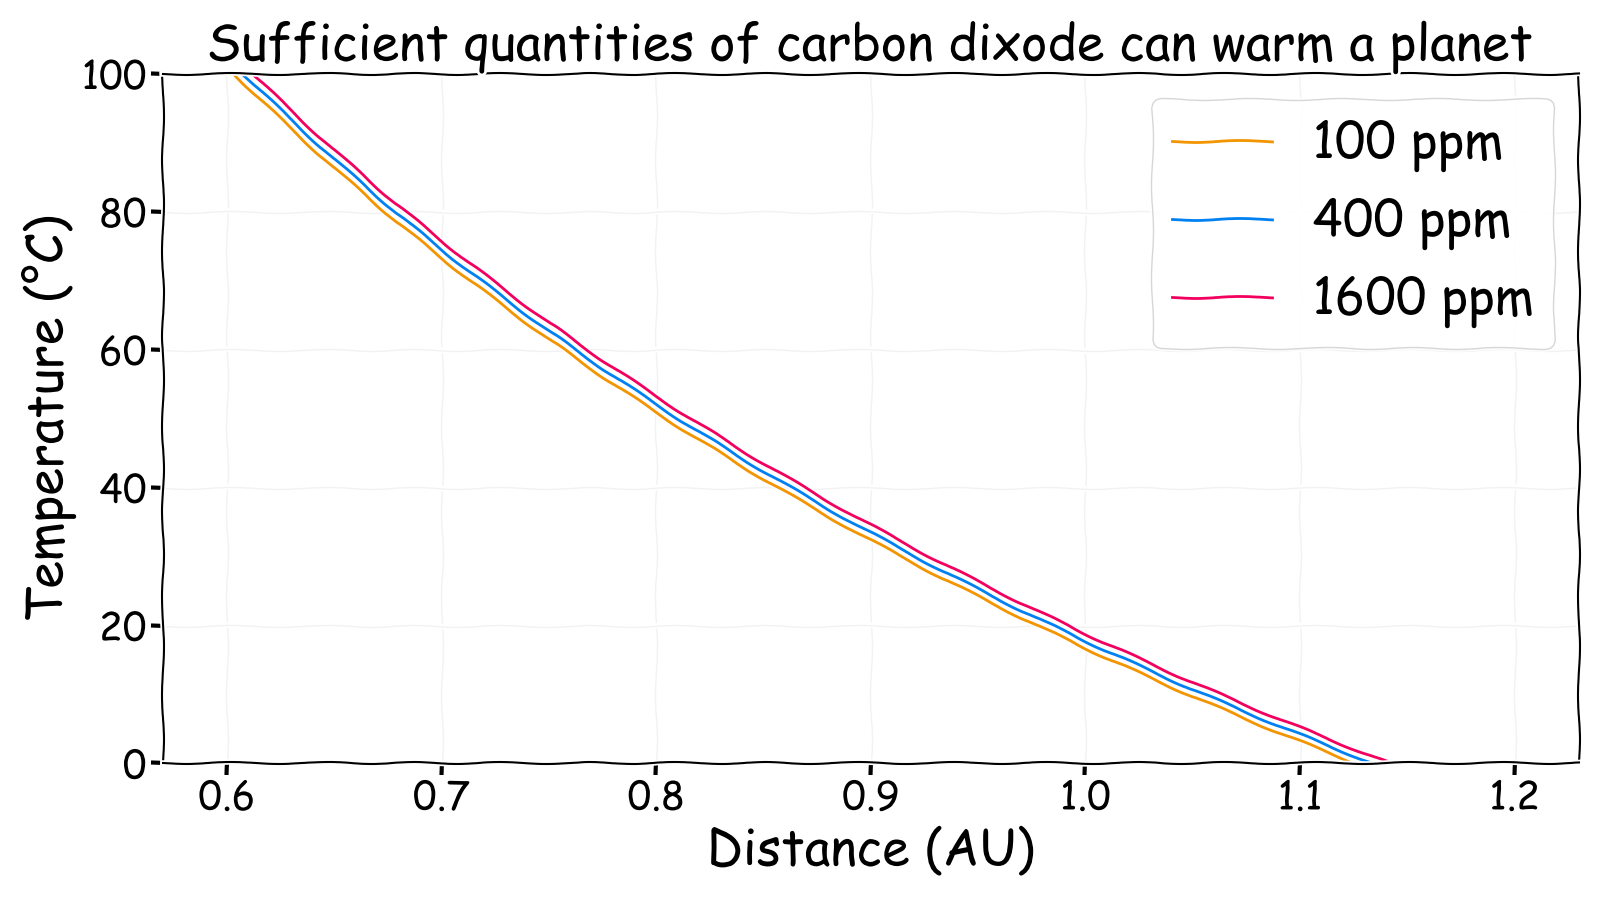 Carbon dioxide can warm a planet